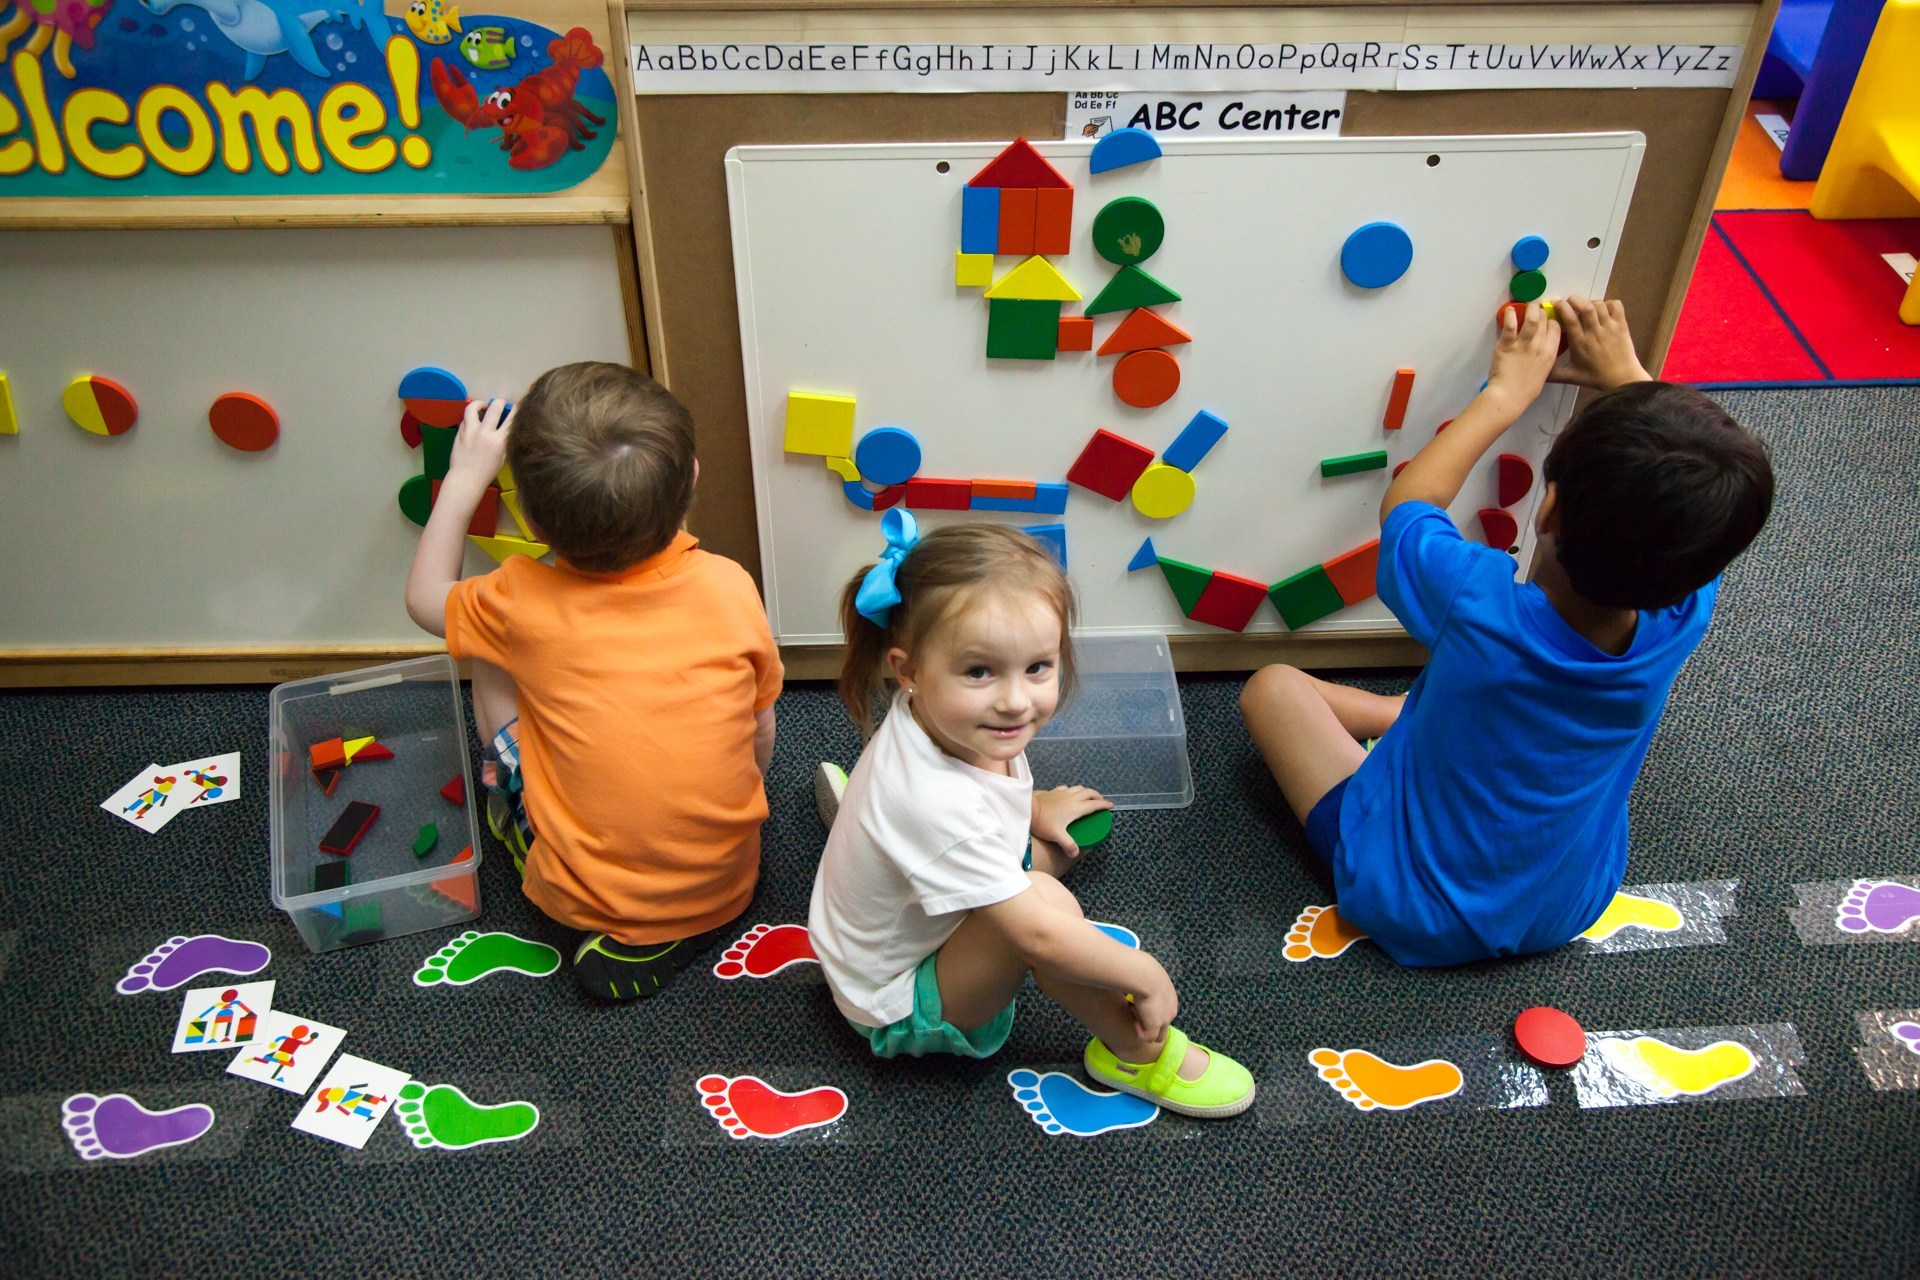 Three elementary students learn their colors and shapes by using the classroom's magnetic whiteboard